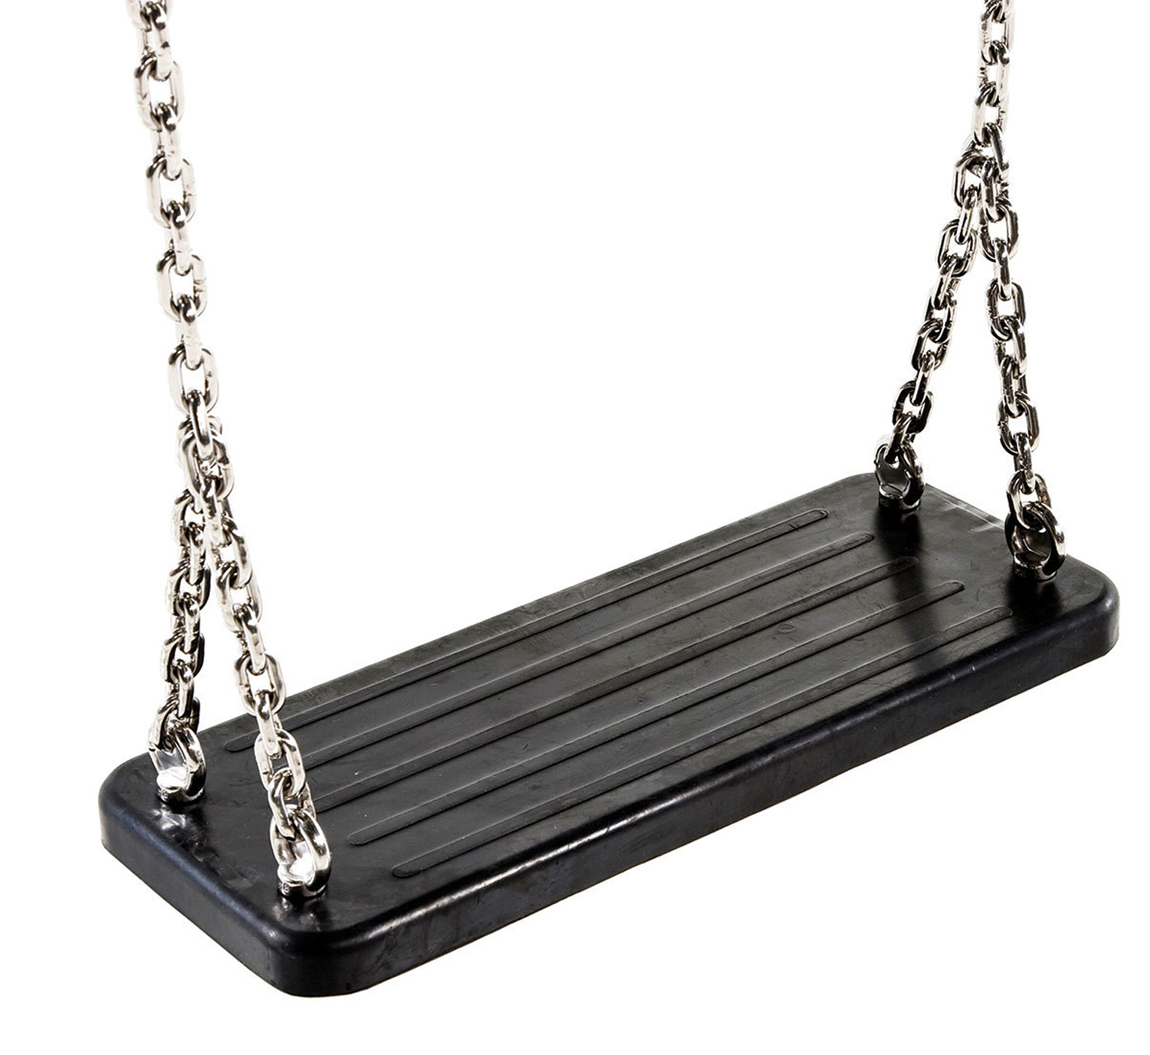 Rubber Swing Seat With Steel Chains | Heavy Duty Rubber Within Swing Seats With Chains (View 4 of 25)